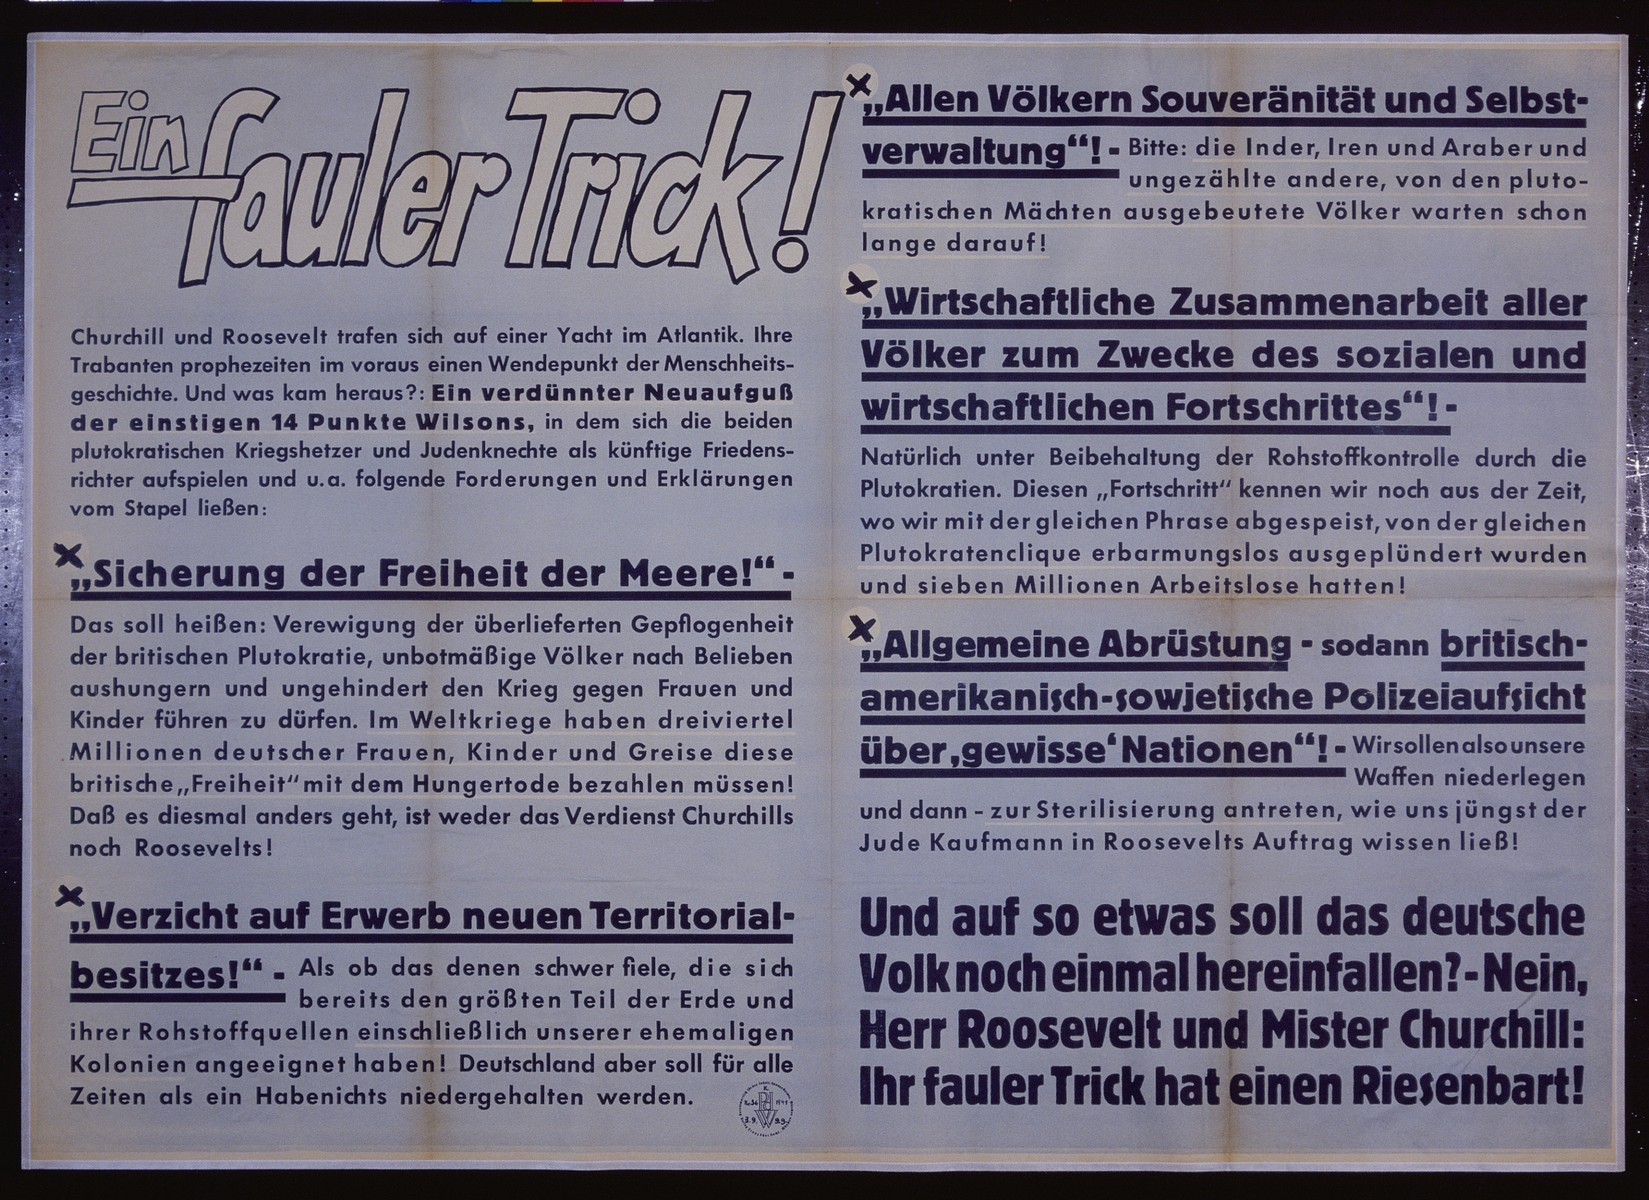 """Nazi propaganda poster entitled, """"Ein fauler Trick,"""" issued by the """"Parole der Woche,"""" a wall newspaper (Wandzeitung) published by the National Socialist Party propaganda office in Munich."""